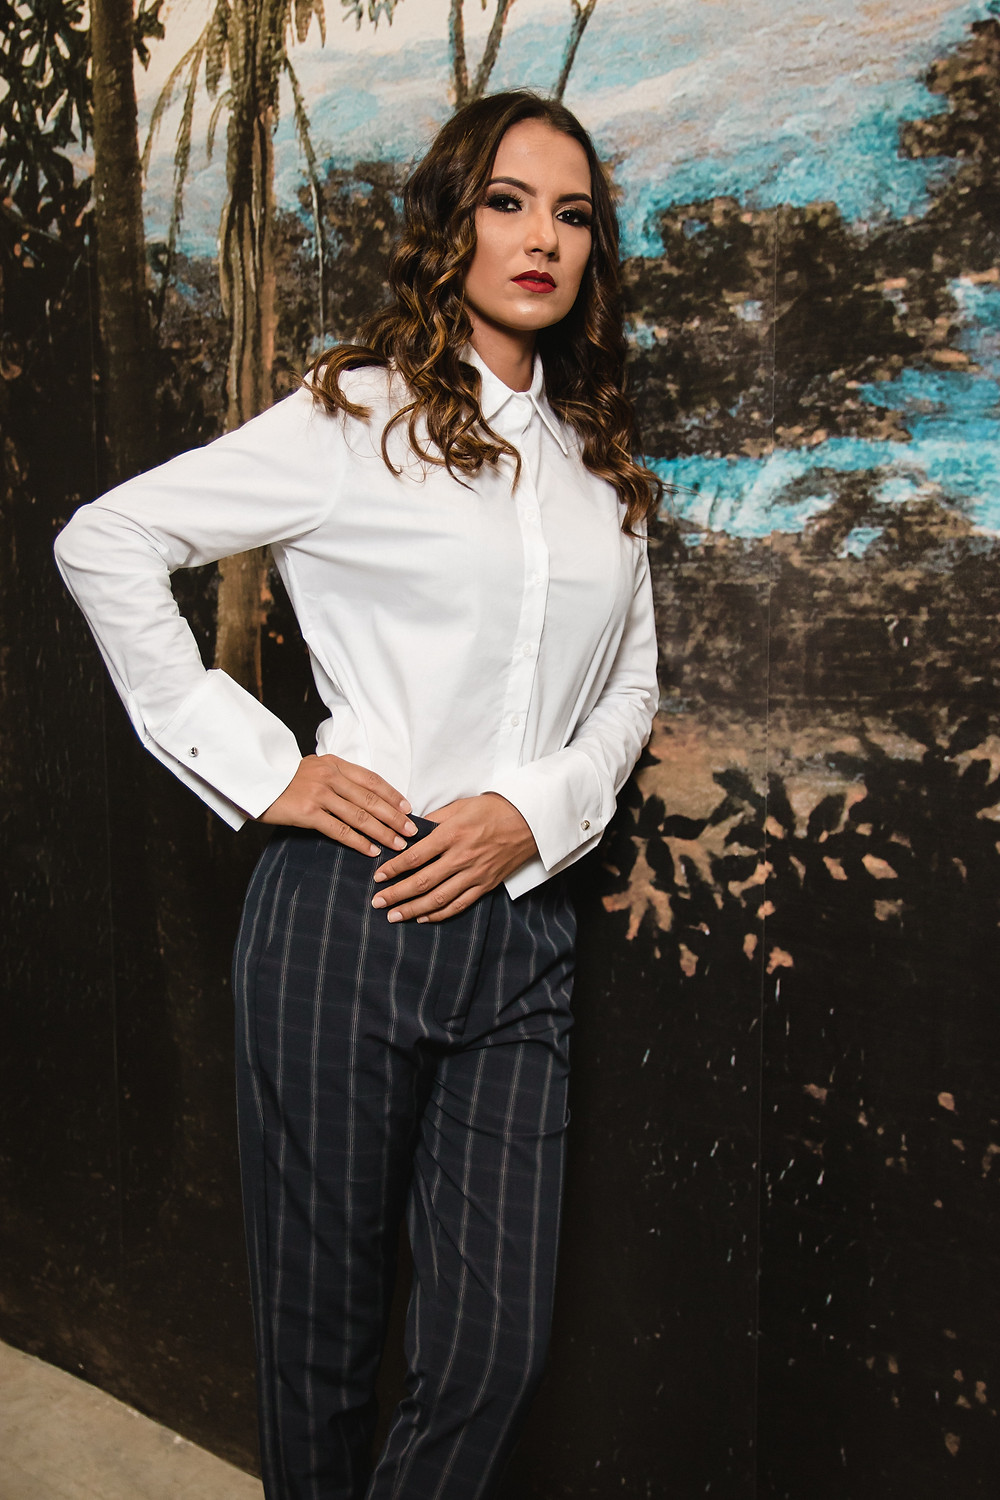 confident woman in suit leans against wall with backdrop